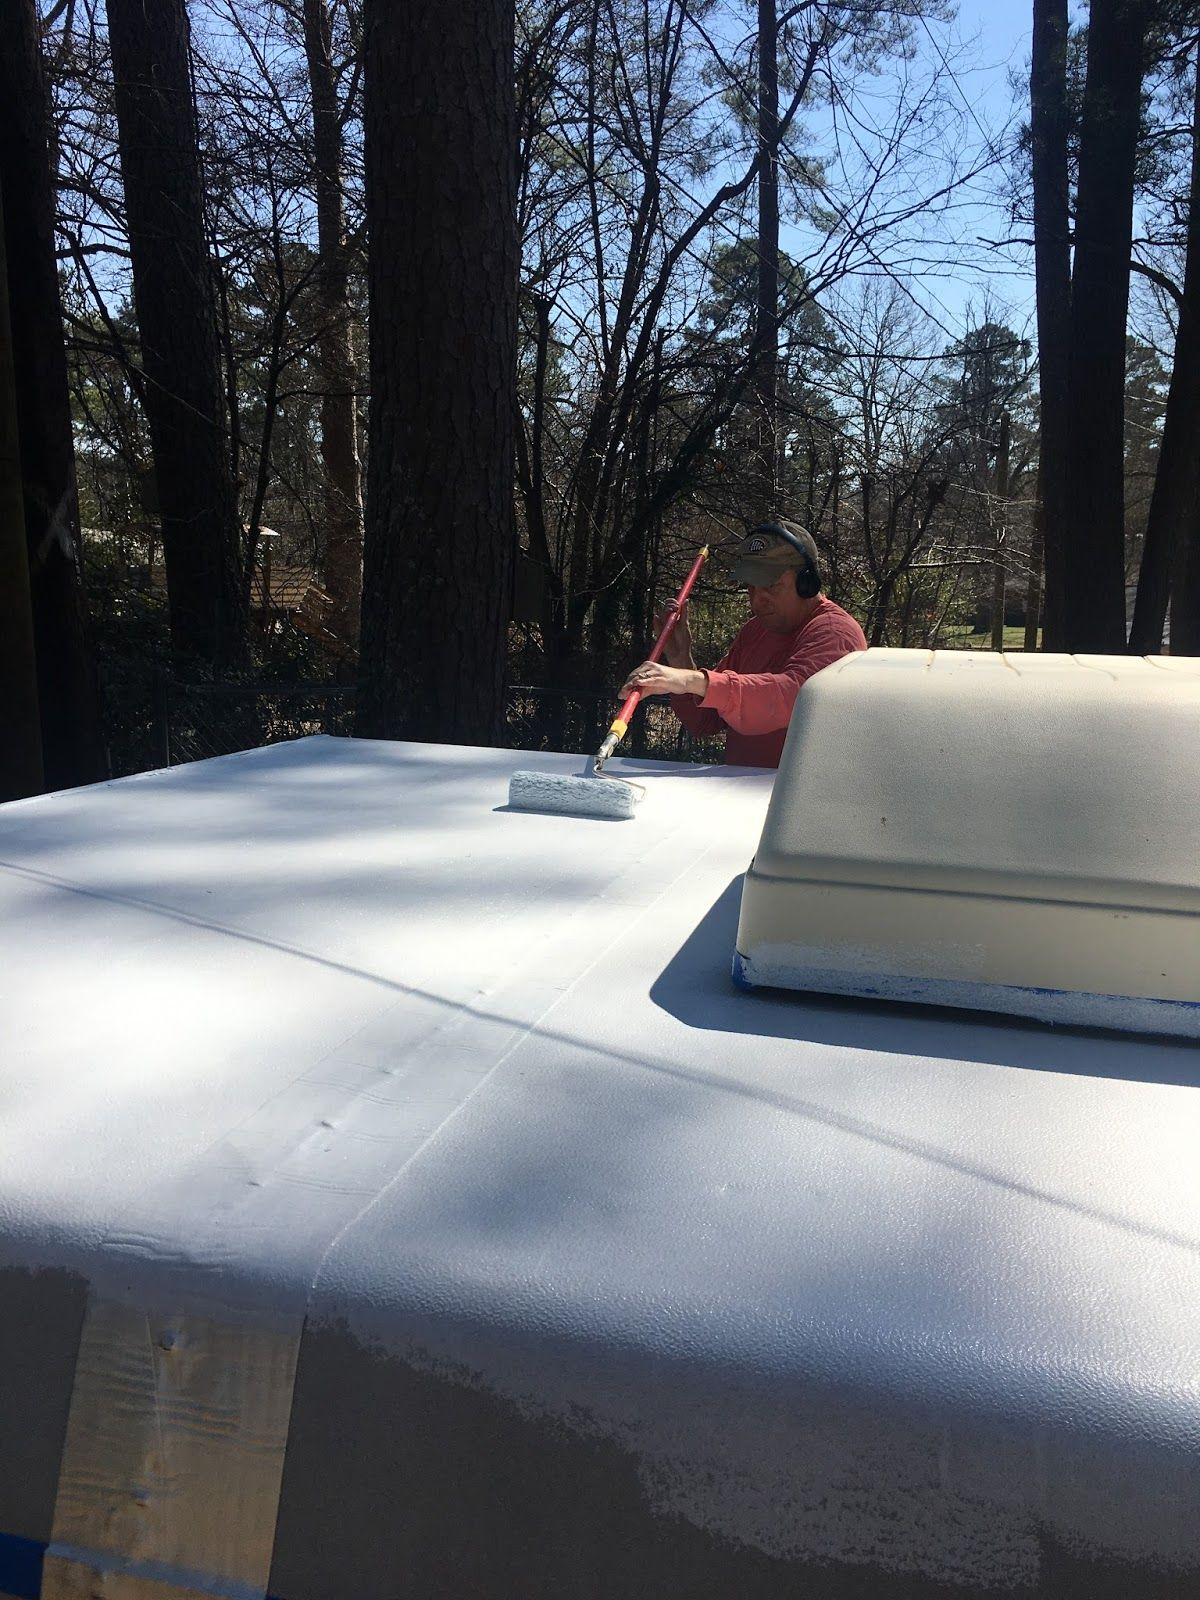 Fixing pop up camper leaks how to do it yourself rv camp fixing a pop up camper roof that is leaking can be done as a diy project solutioingenieria Choice Image